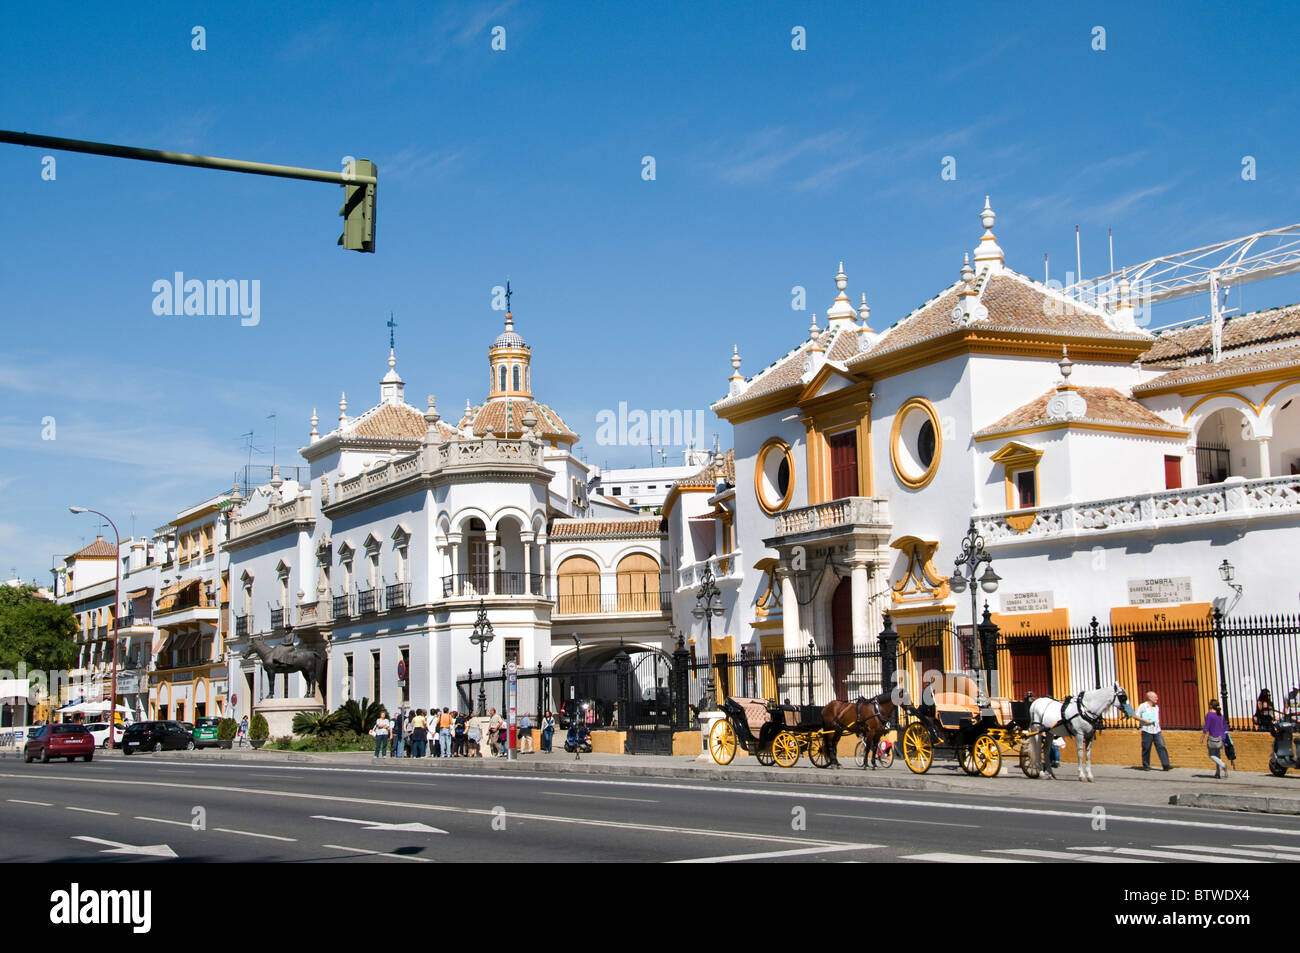 The Plaza de Toros de la Real Maestranza de Caballería de Sevilla is the oldest bullring in Spain  Andalusia - Stock Image